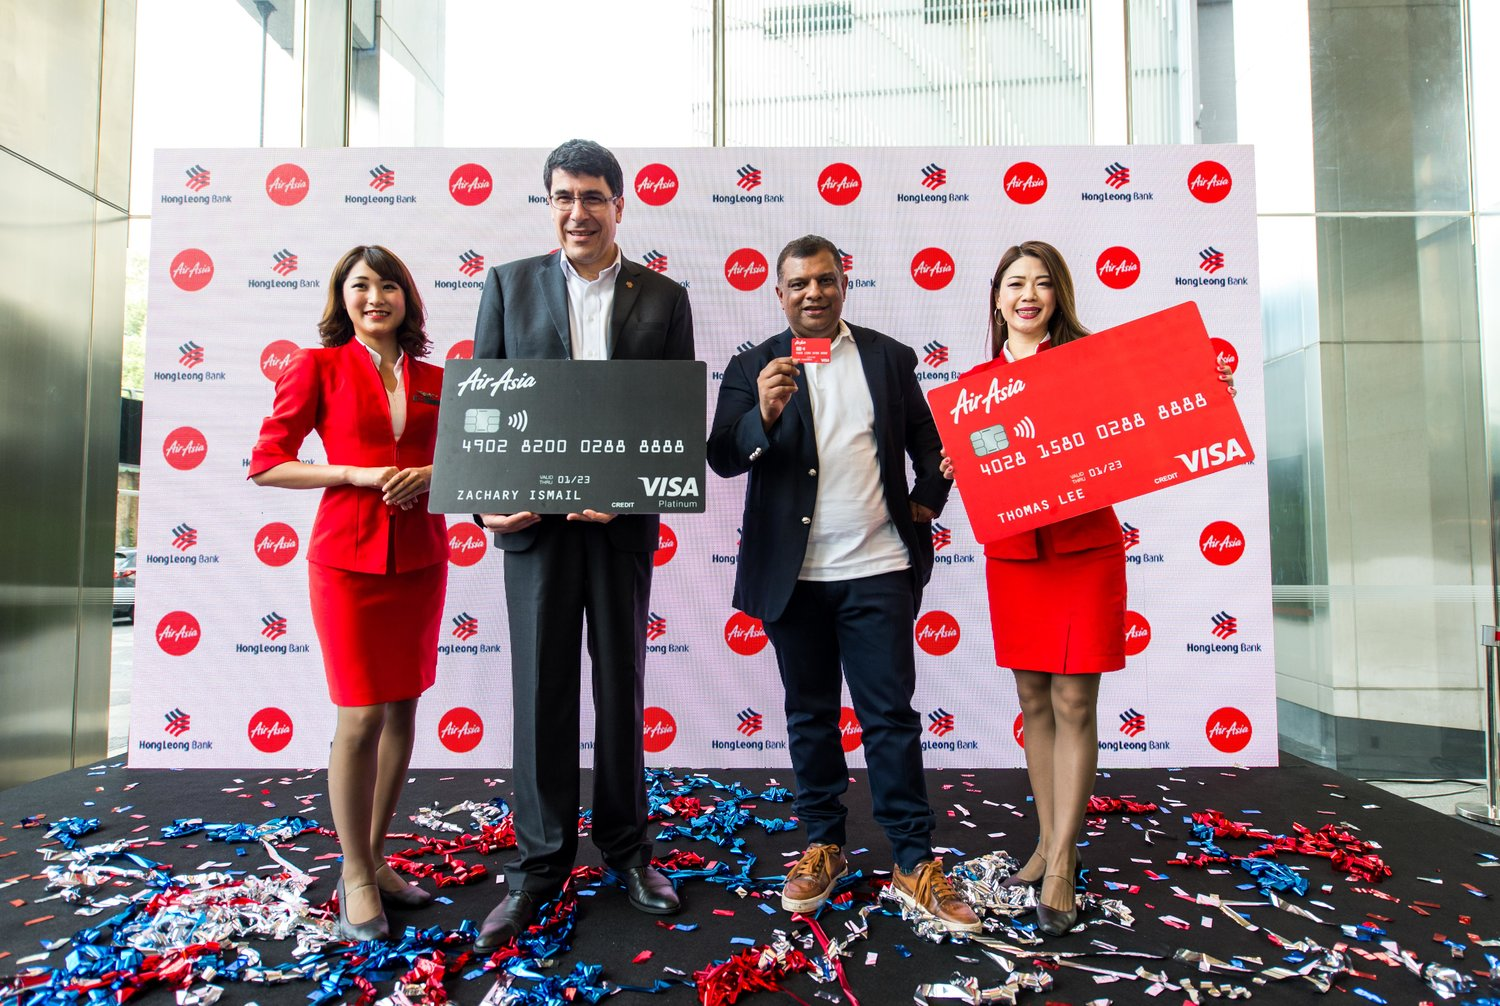 Fast track to free flights with the all-new AirAsia Hong